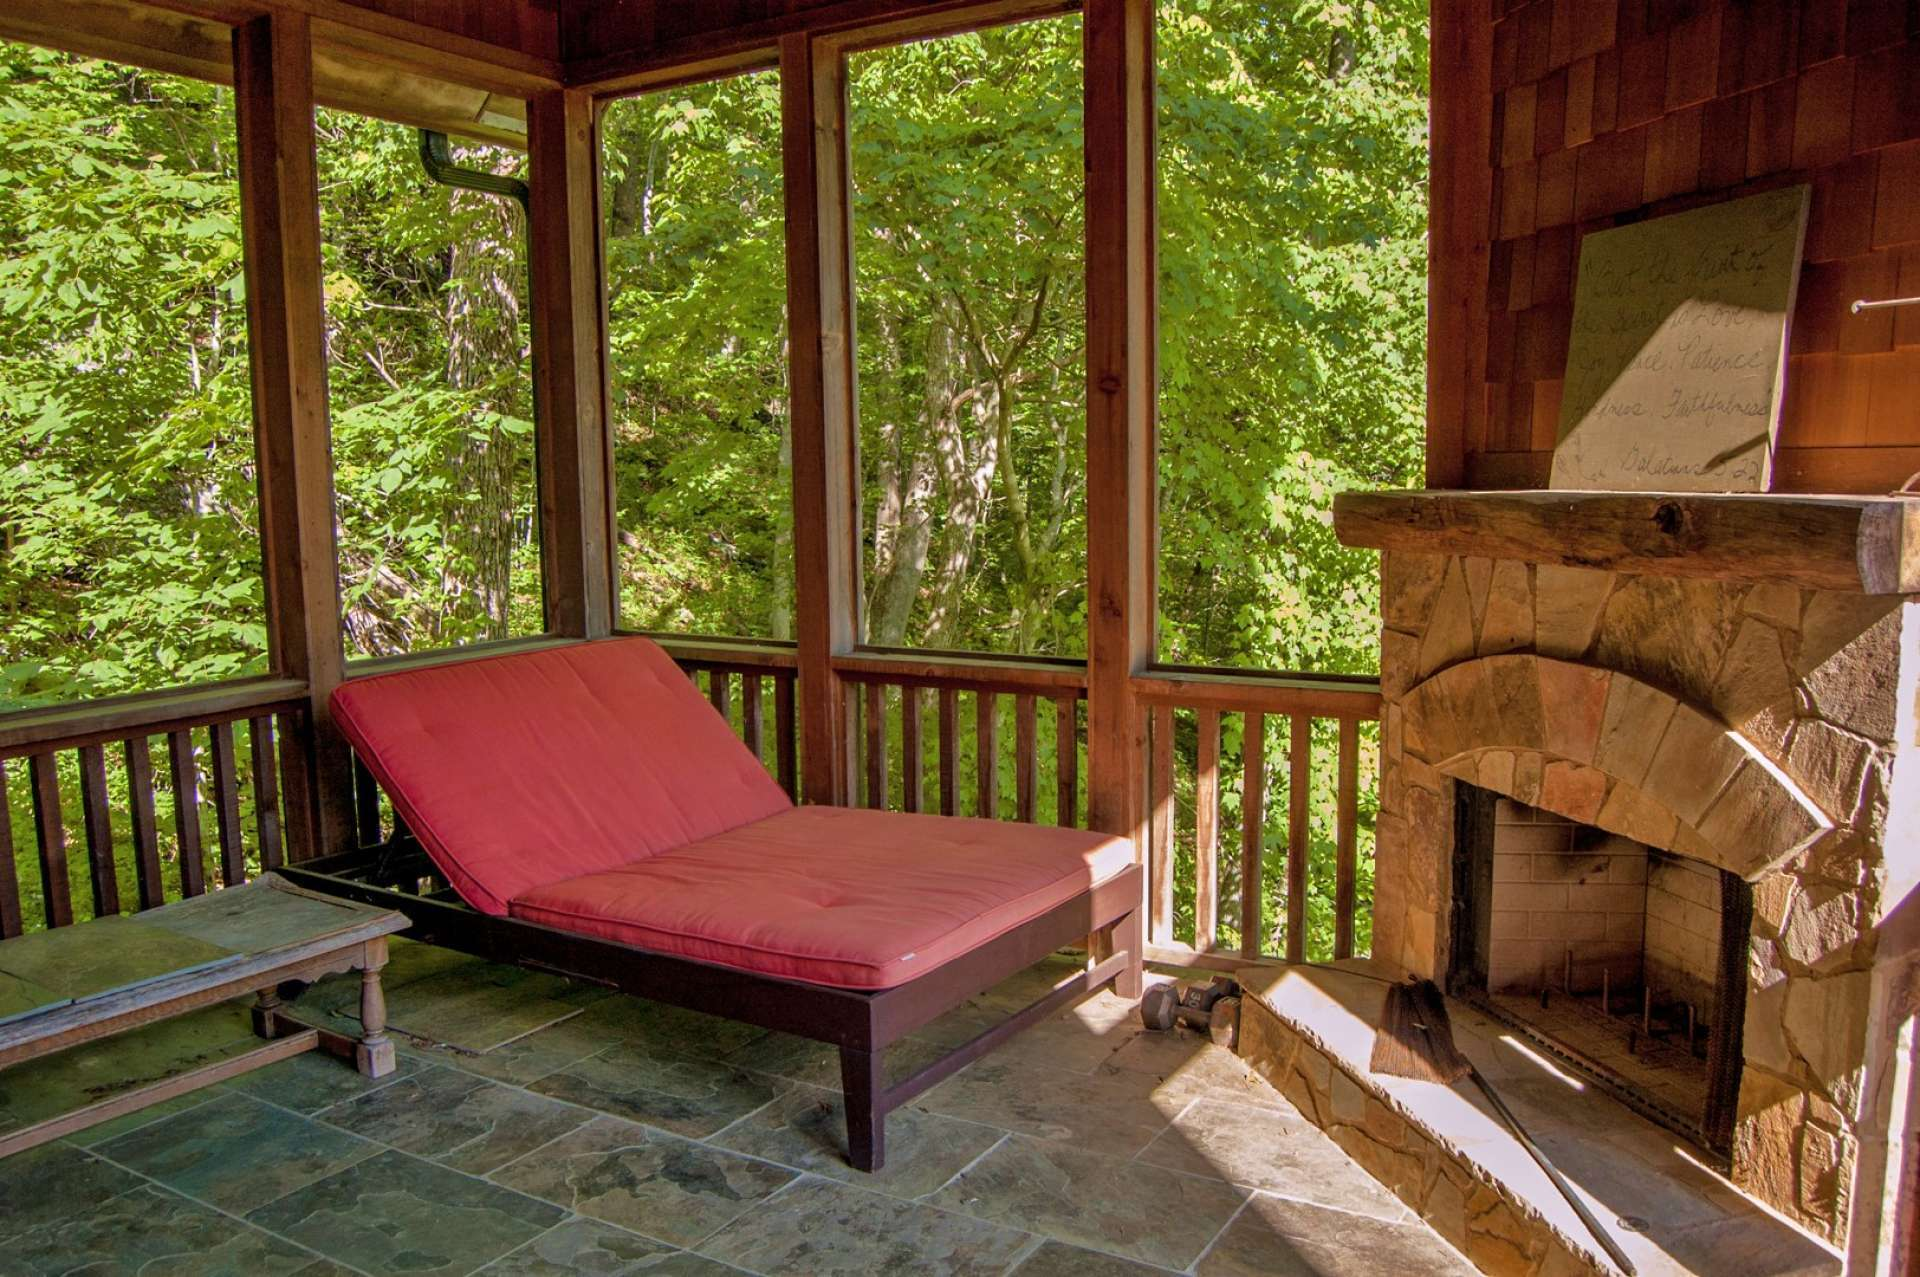 Just off the master bedroom, this private covered porch is the perfect spot to relax at the end of the day in front of the outdoor fireplace.